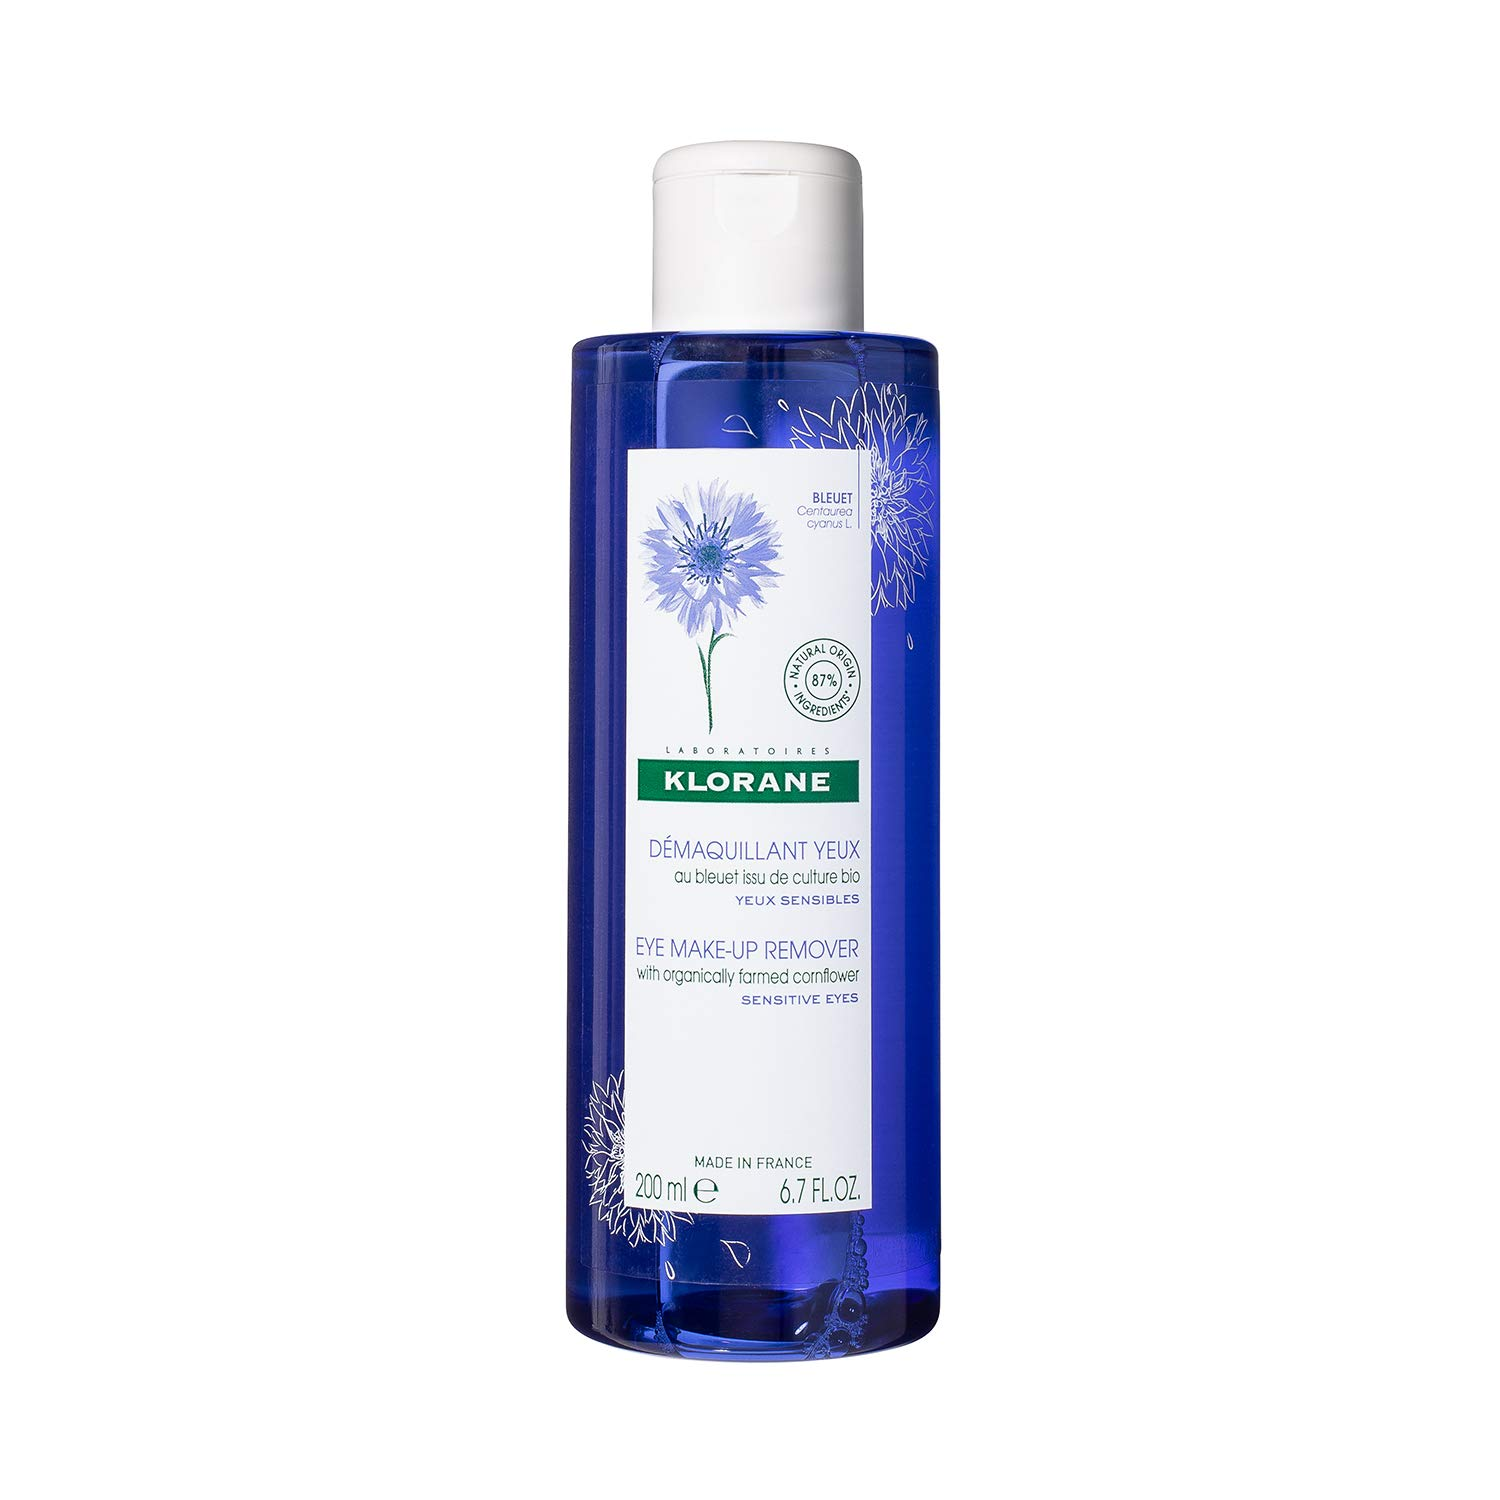 Klorane Floral Lotion Eye Make-up Remover with Soothing Cornflower for Sensitive Skin, Oil, Fragrance and Sulfate Free